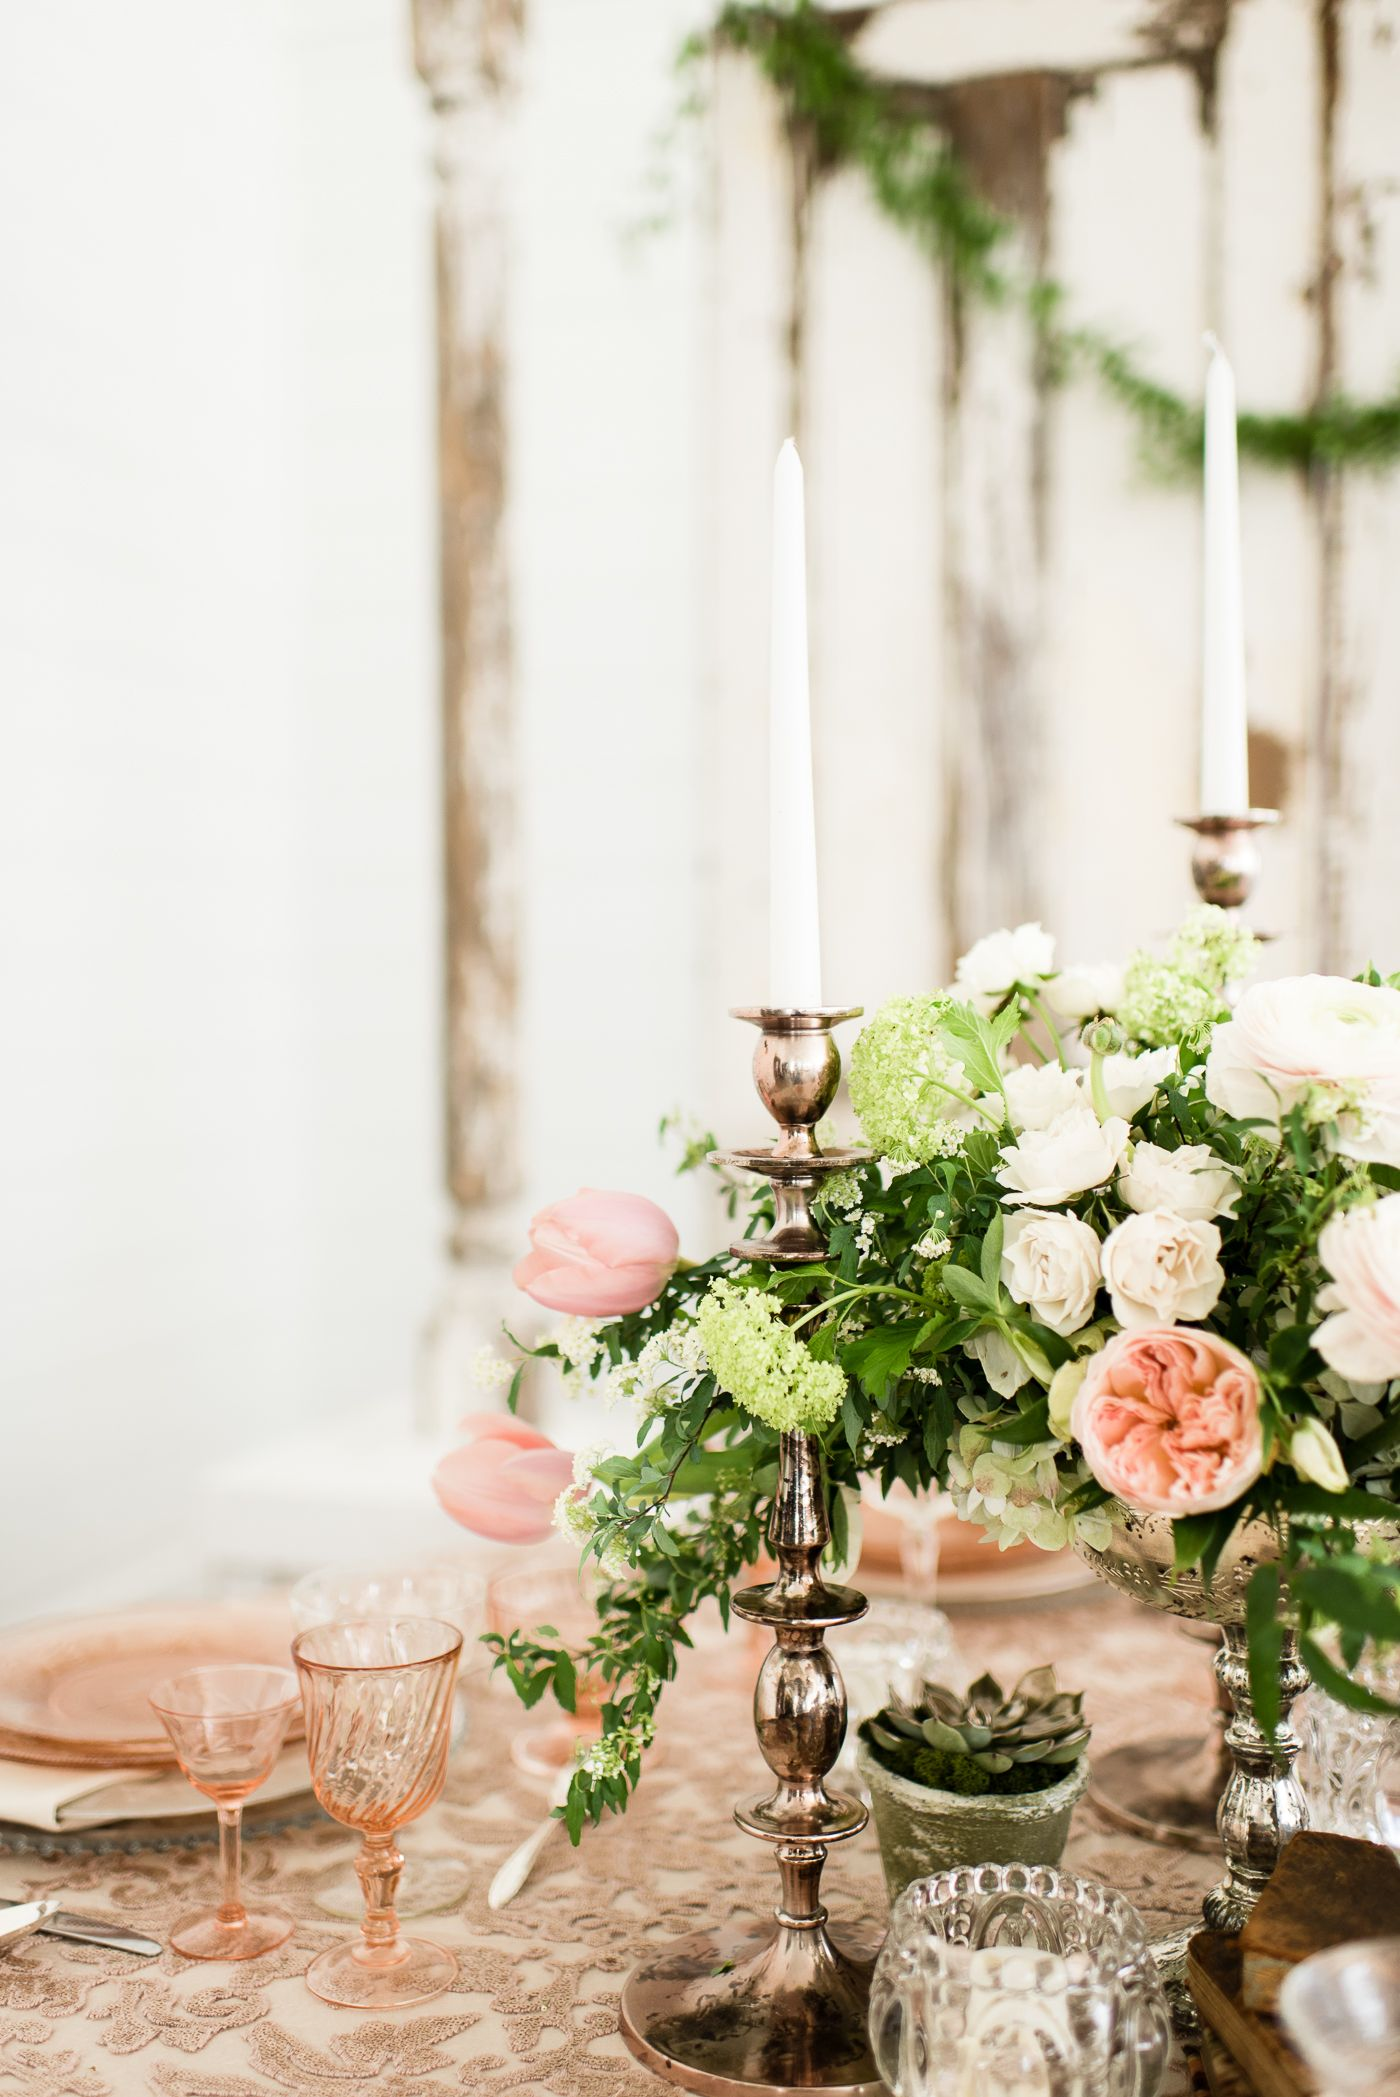 Rose Gold And White Wedding Ideas - The Best Wedding 2018